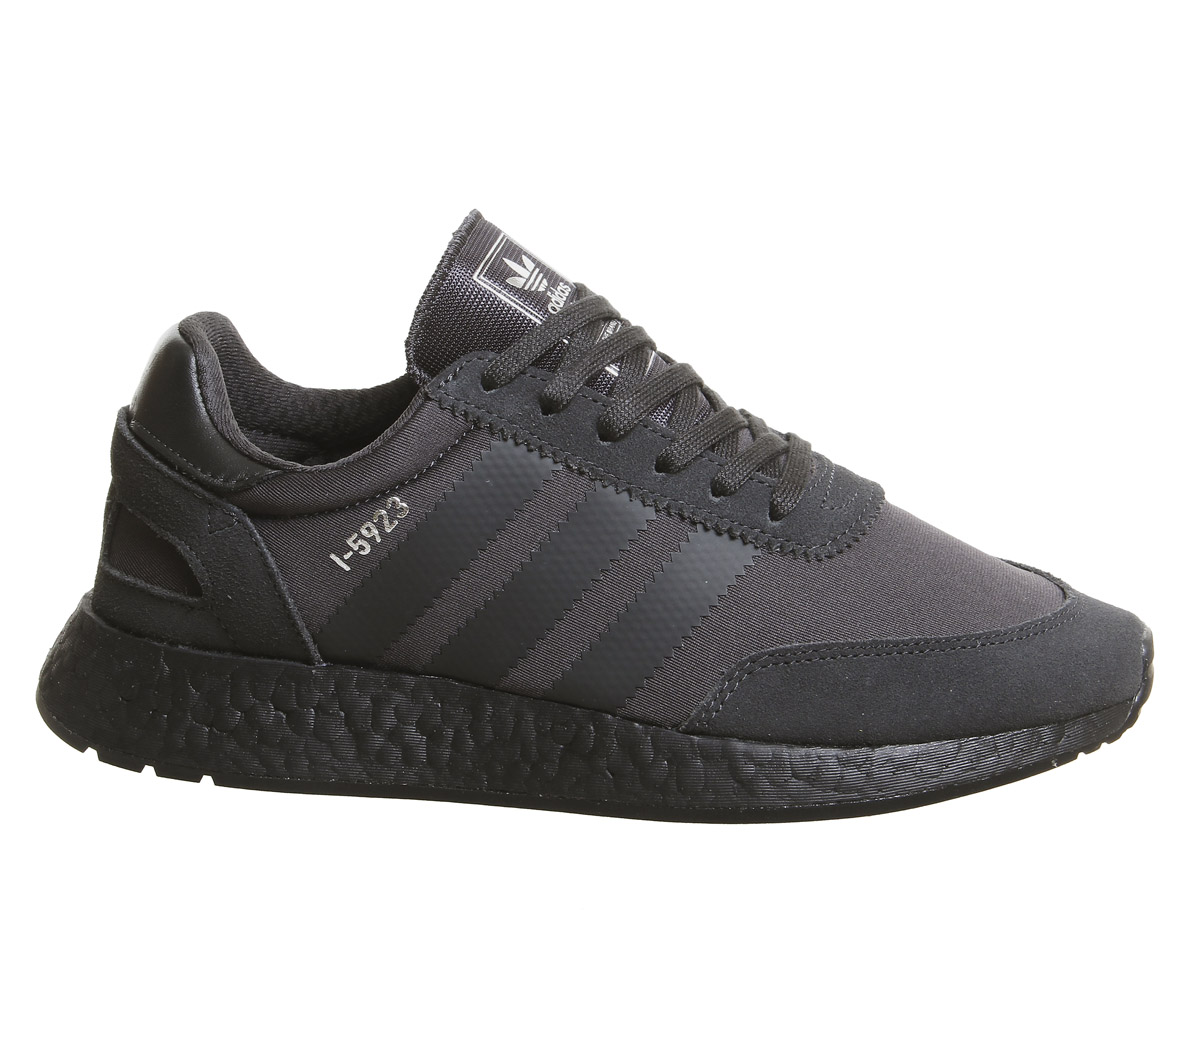 brand new ba83f 13d7f Sentinel Womens Adidas I-5923 Trainers Carbon Core Black Exclusive Trainers  Shoes